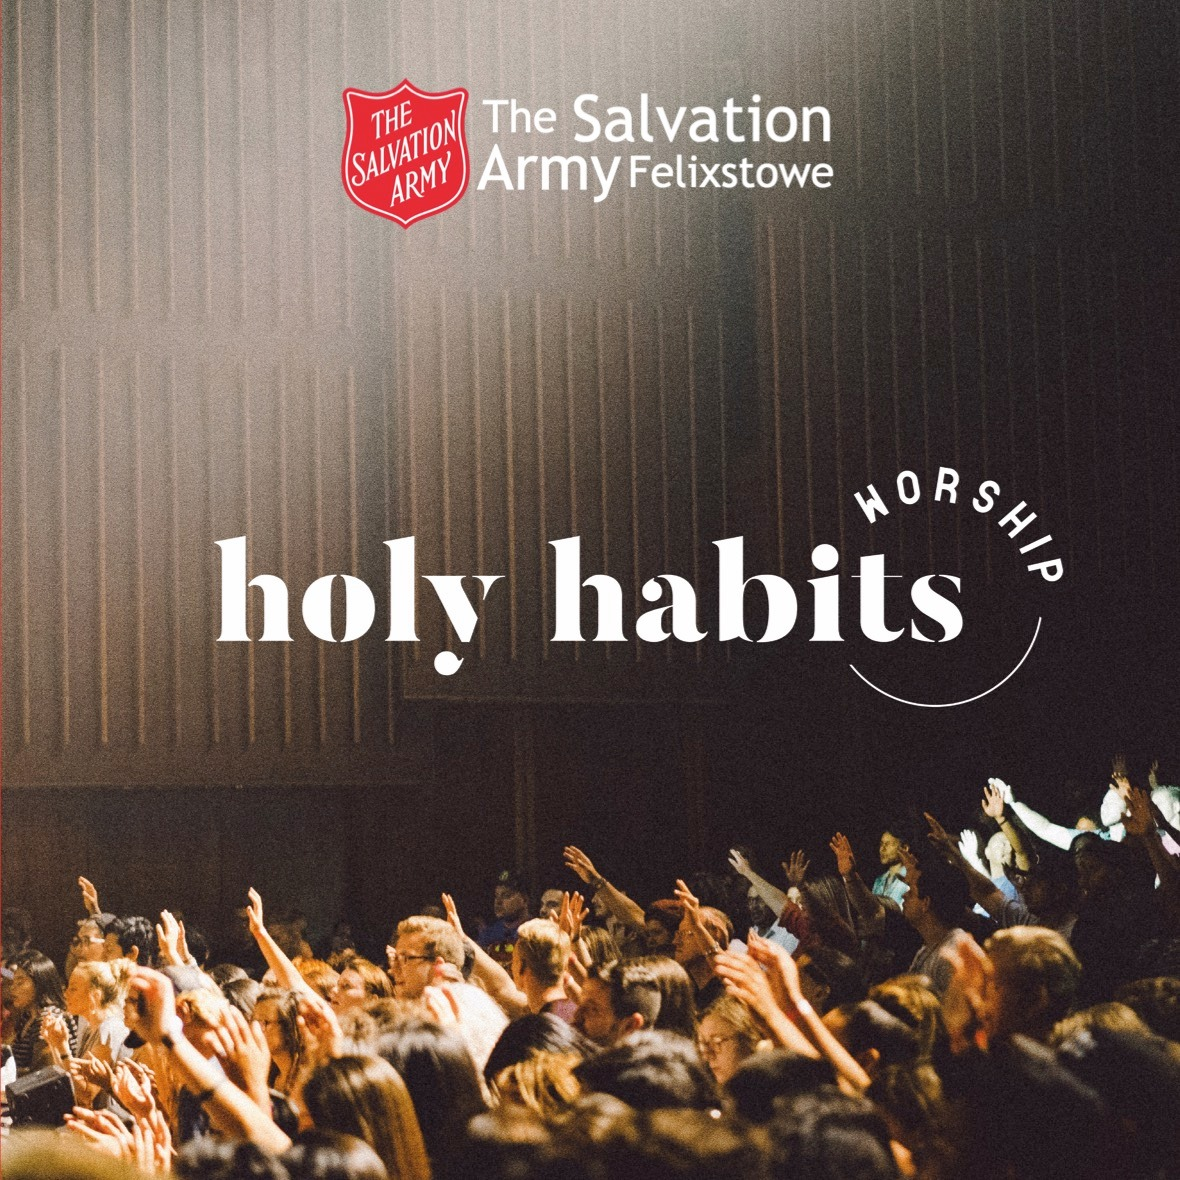 Sunday Morning Service – Holy Habits 'Worship'